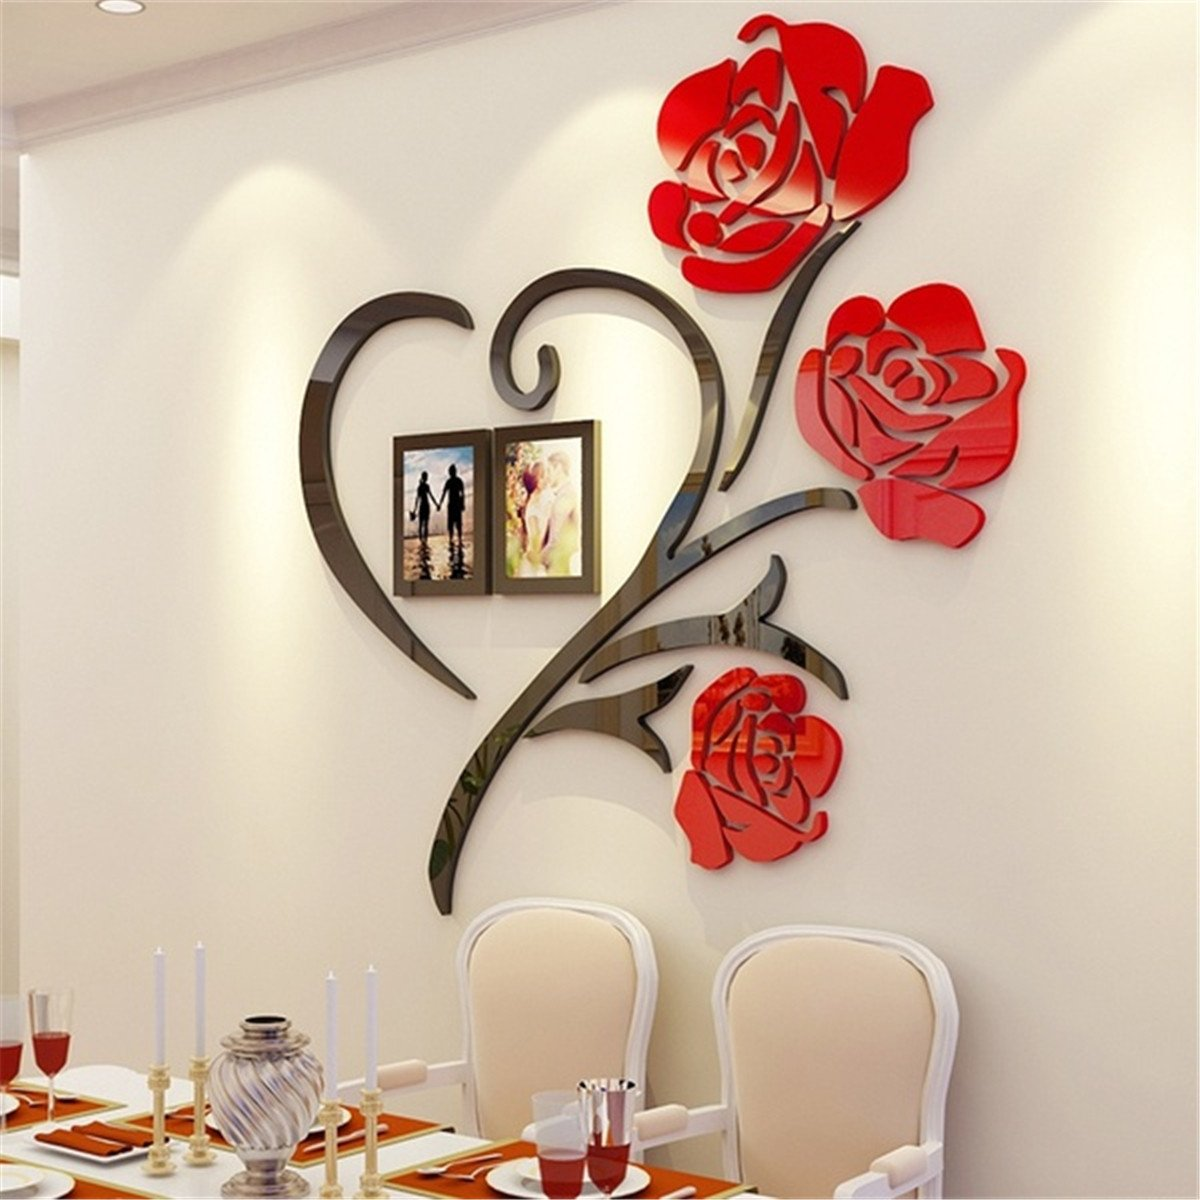 Arts for Bedroom Walls Lovely Details About 3d Acrylic Wall Sticker Love Rose Frame Art Decor Living Room Home Decal